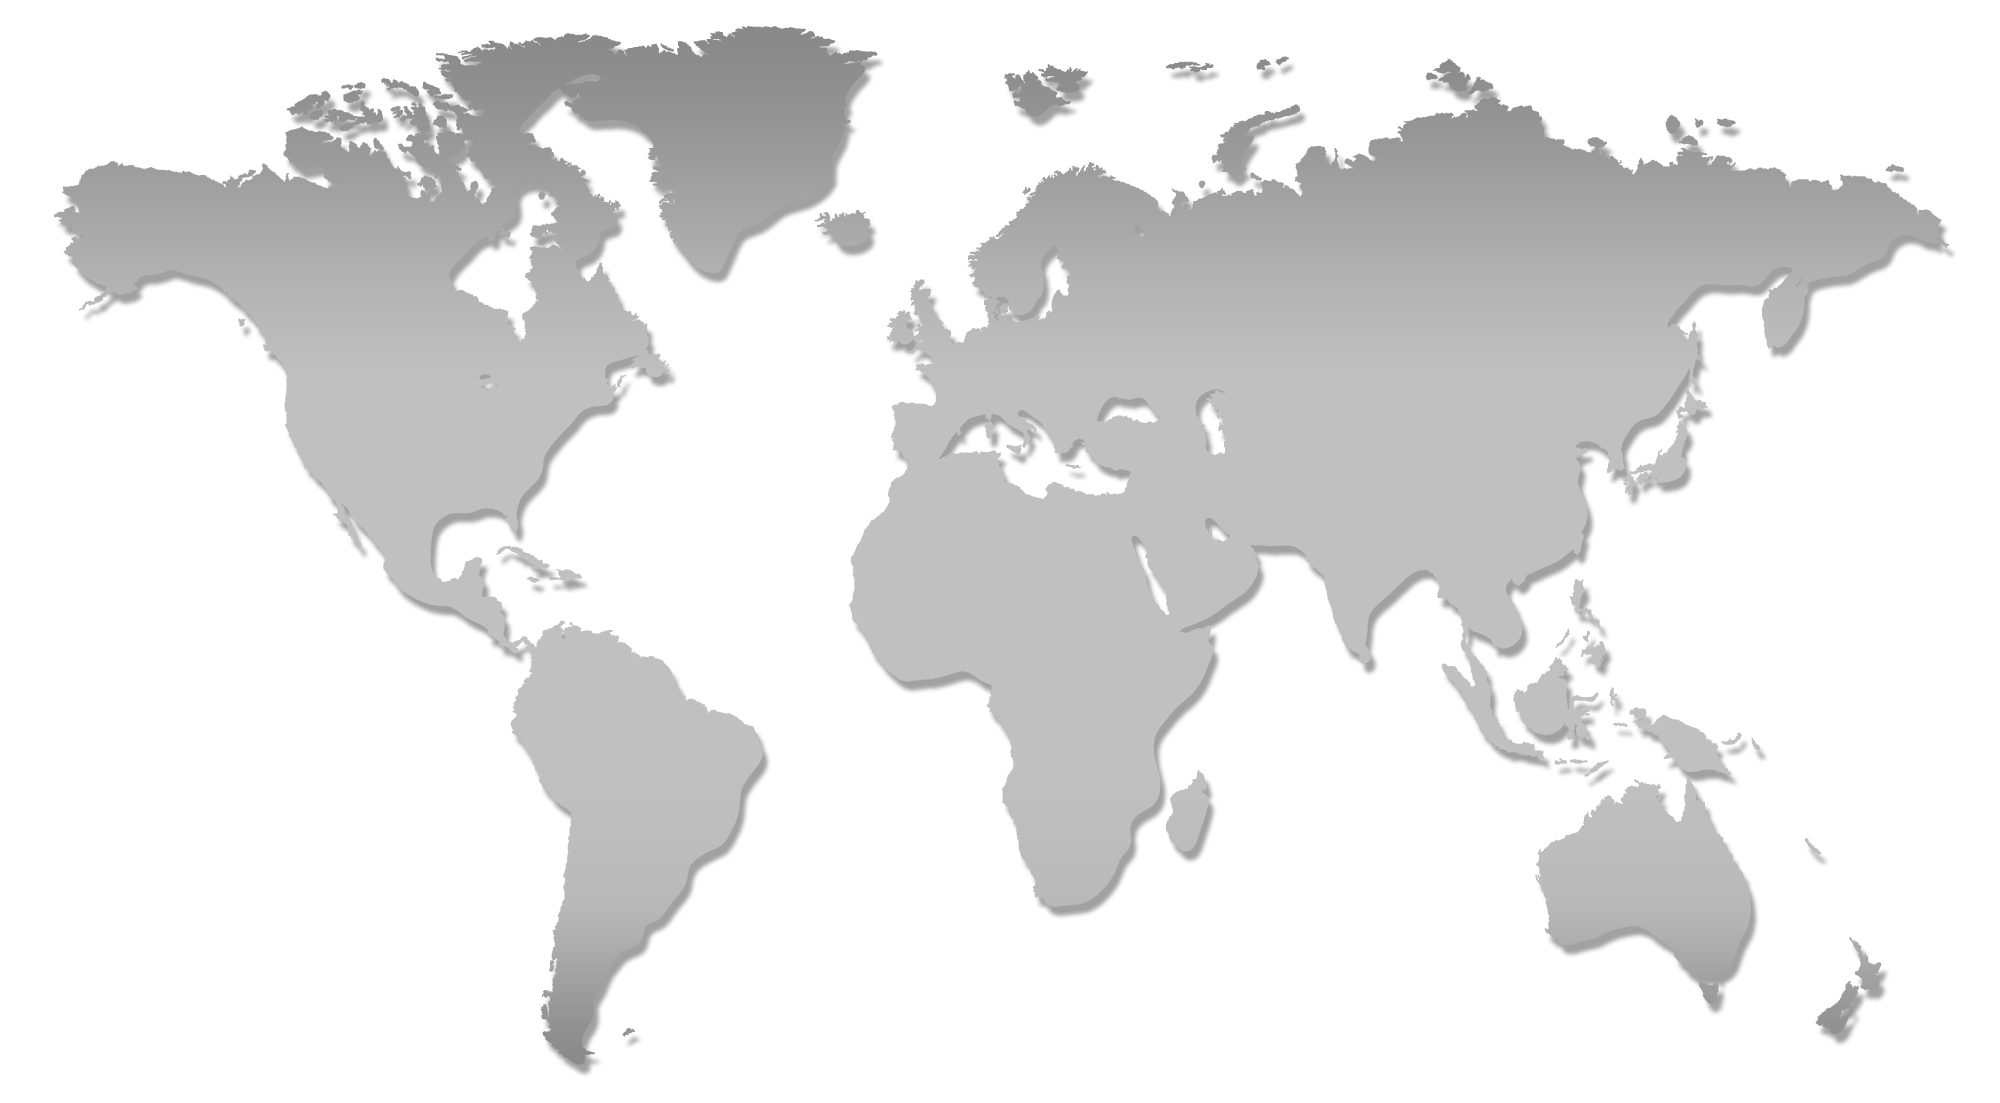 World Map PNG Image - Map Of The World PNG HD